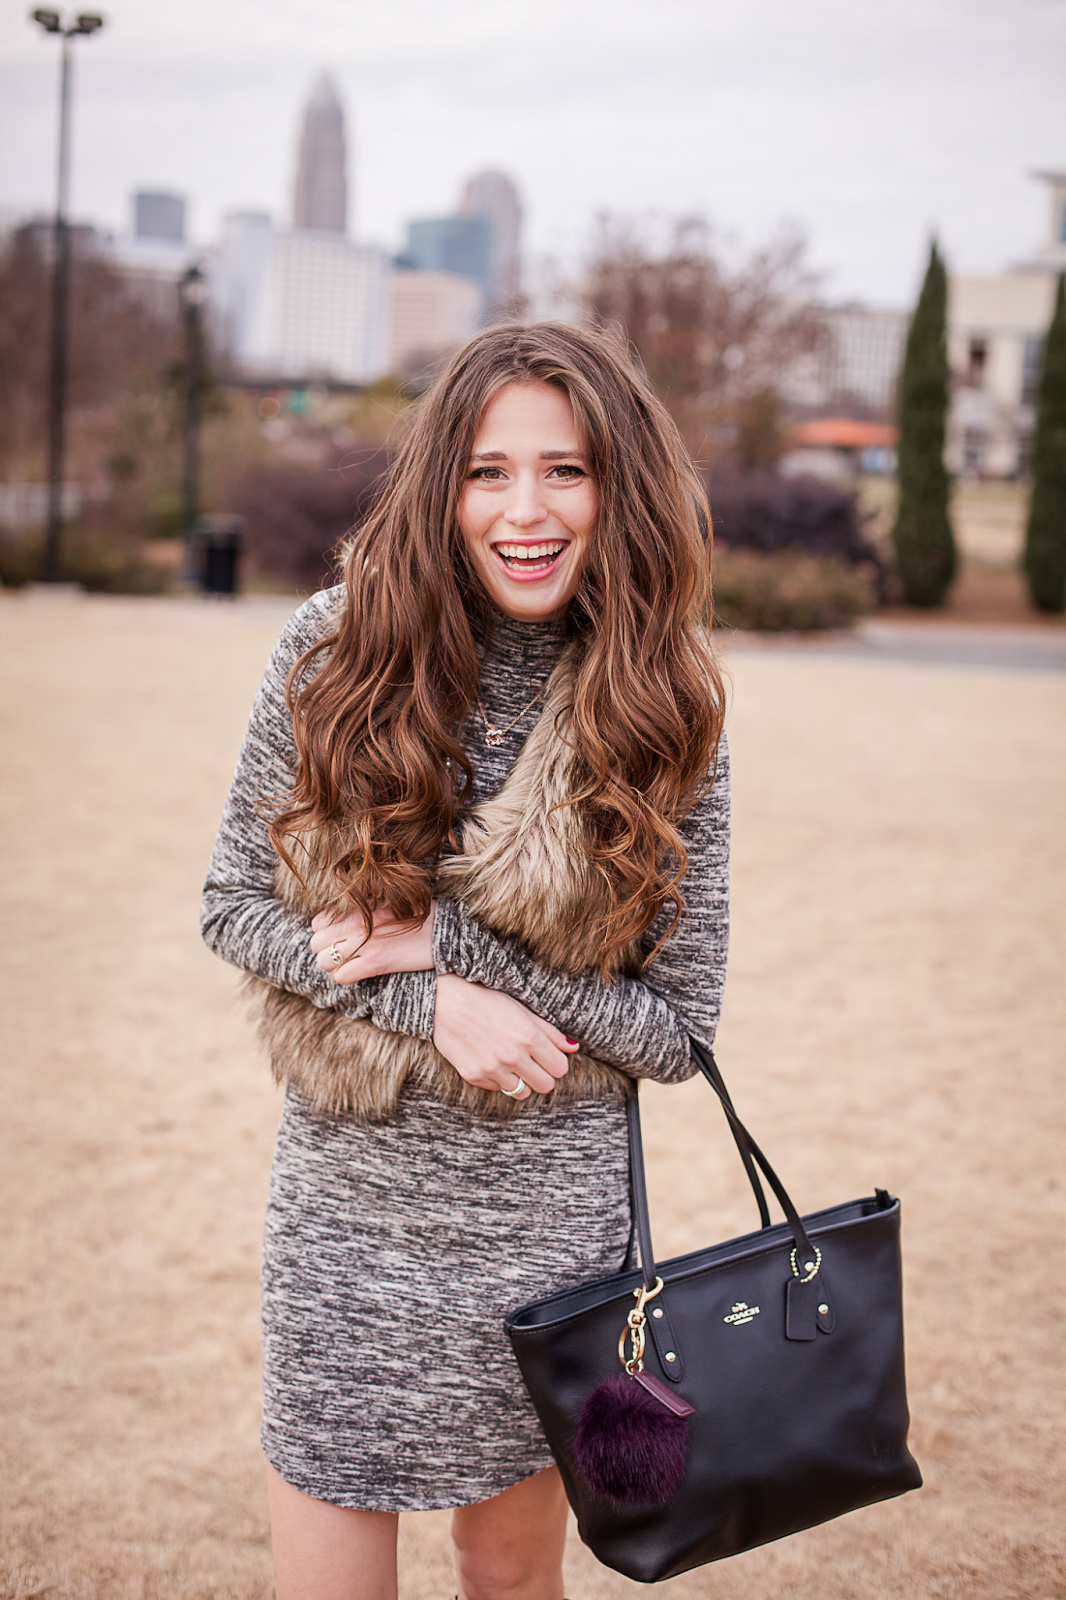 bfe5a89e6e882 Coziest Sweater Dress. | Southern Belle in Training